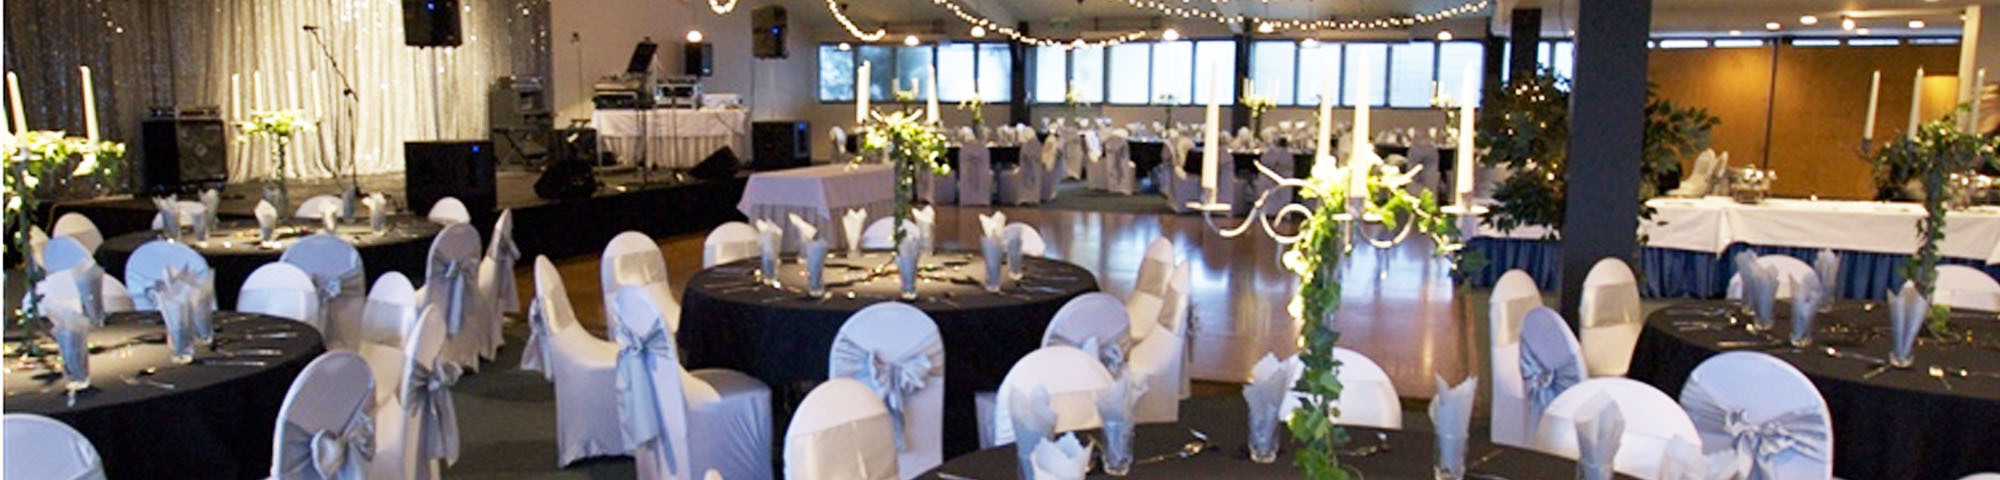 Wedding catering auckland reception venue catering wedding reception party and corporate event venue in central auckland and professional catering available auckland wide junglespirit Choice Image